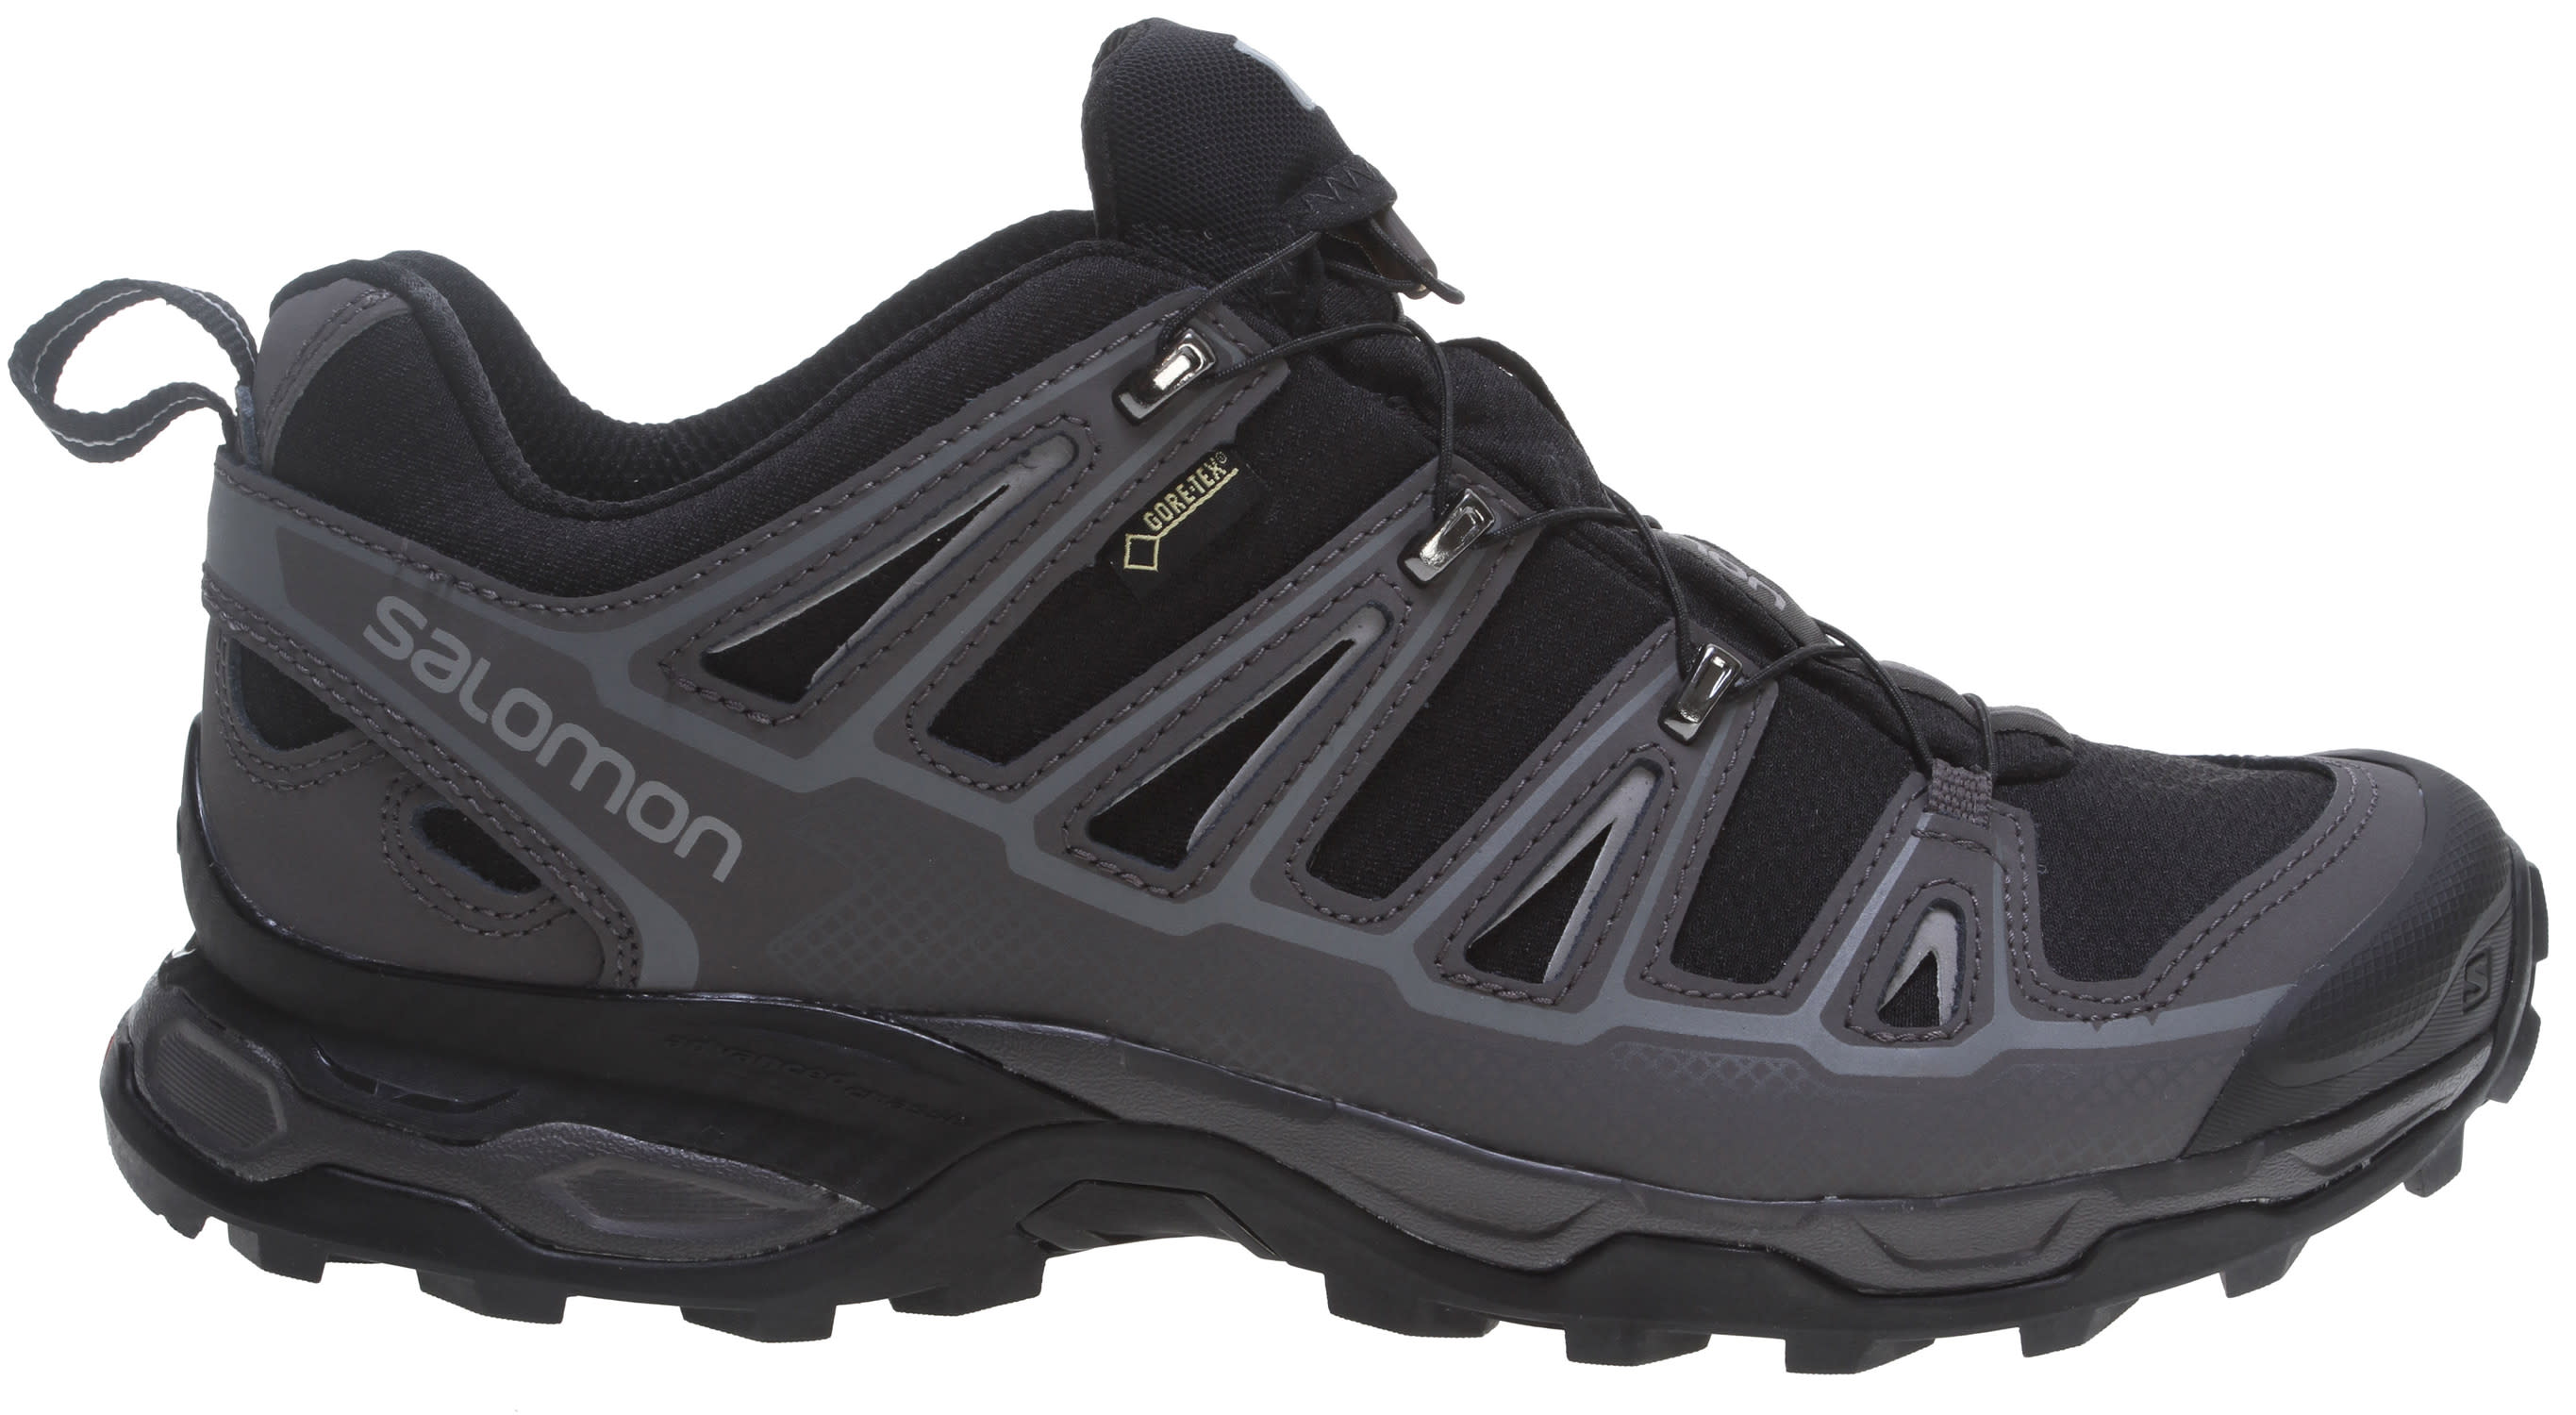 7c92176a9848 Salomon X Ultra 2 GTX Hiking Shoes - thumbnail 1